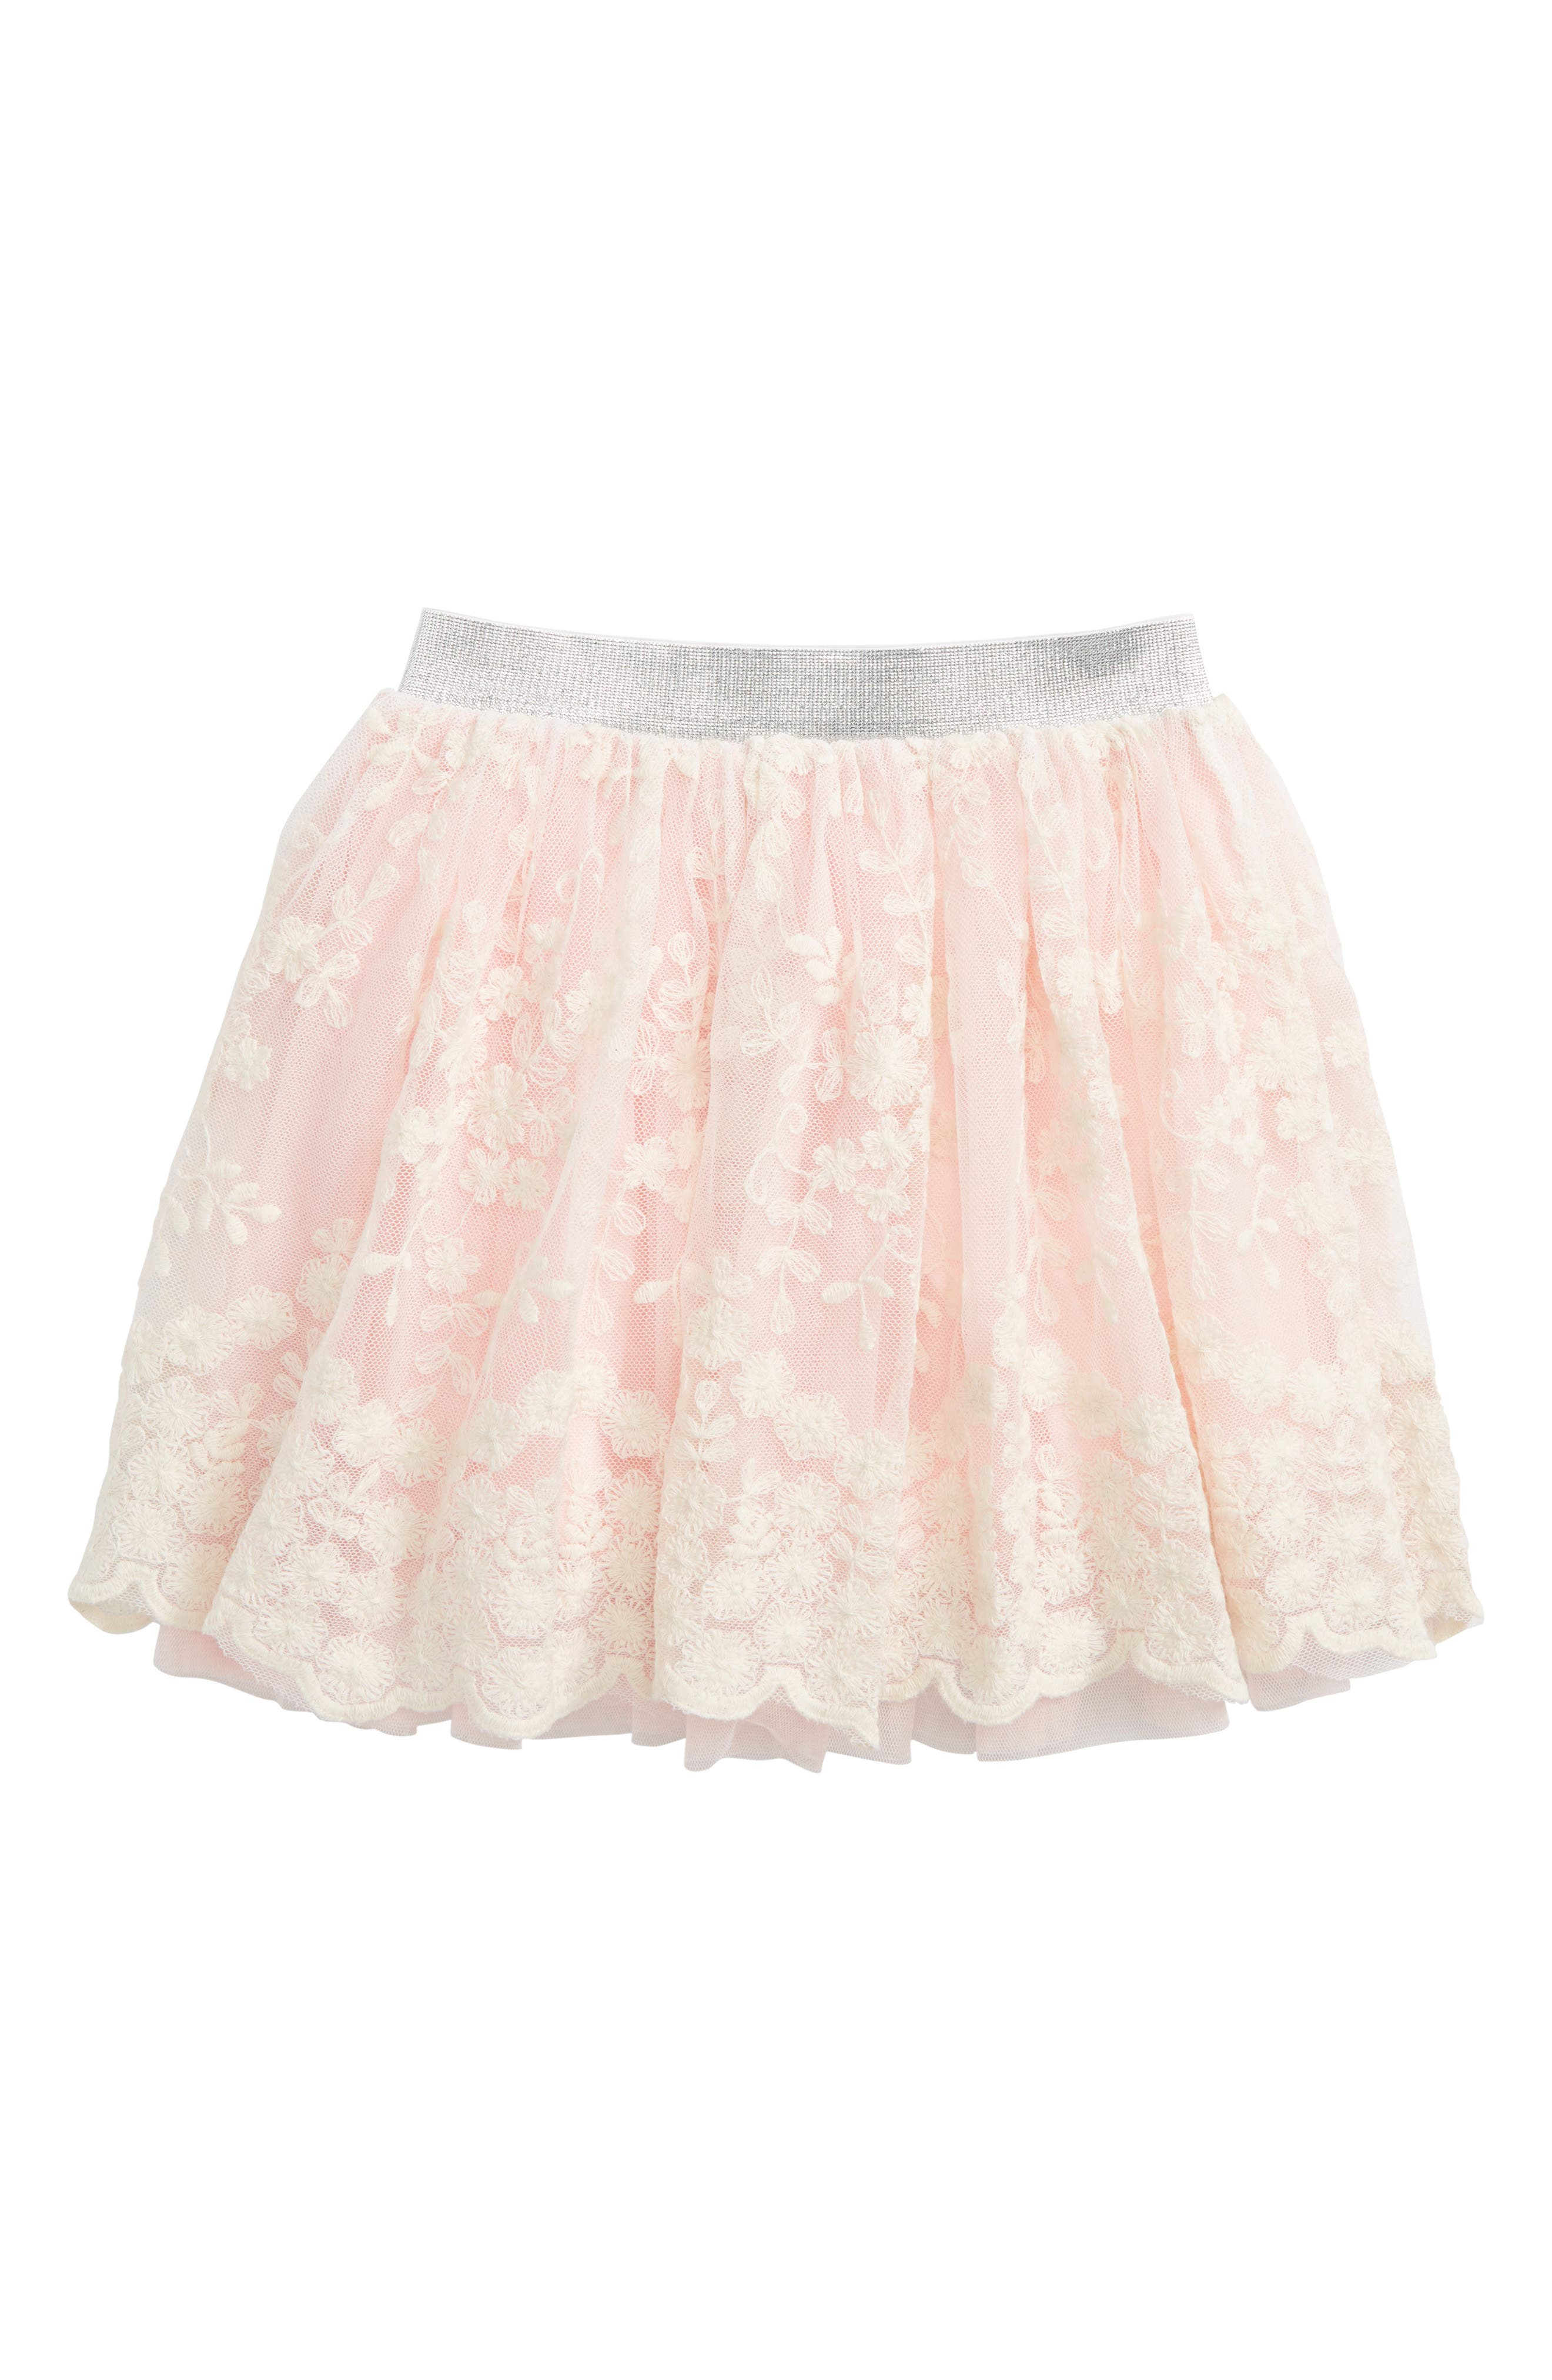 Floral Lace Skirt,                         Main,                         color, Cream Multi